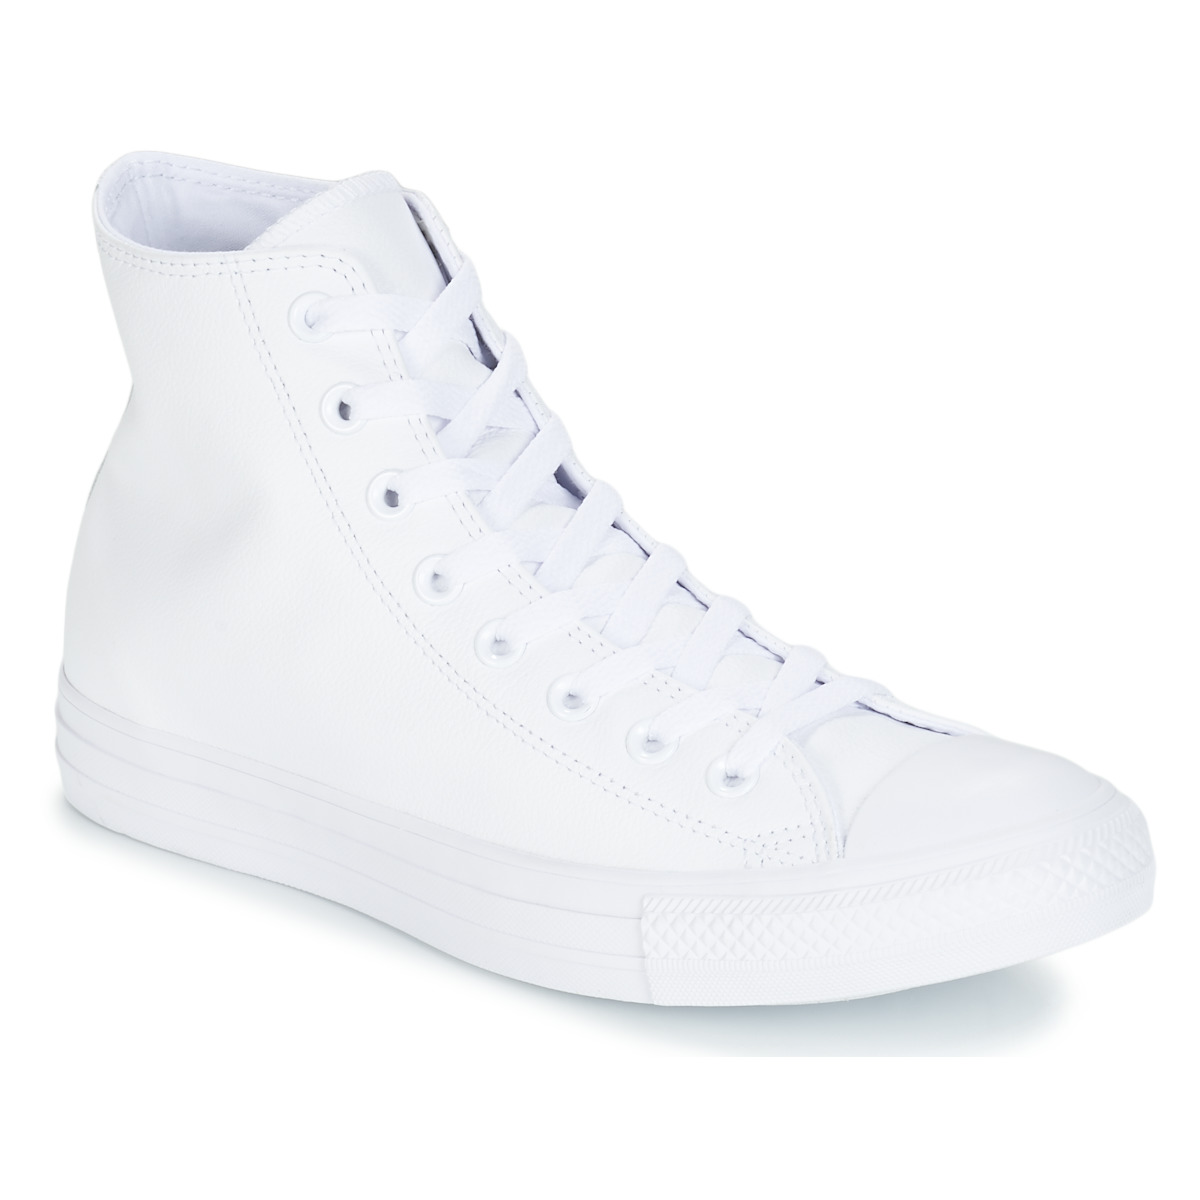 Converse Blanche Homme Cuir